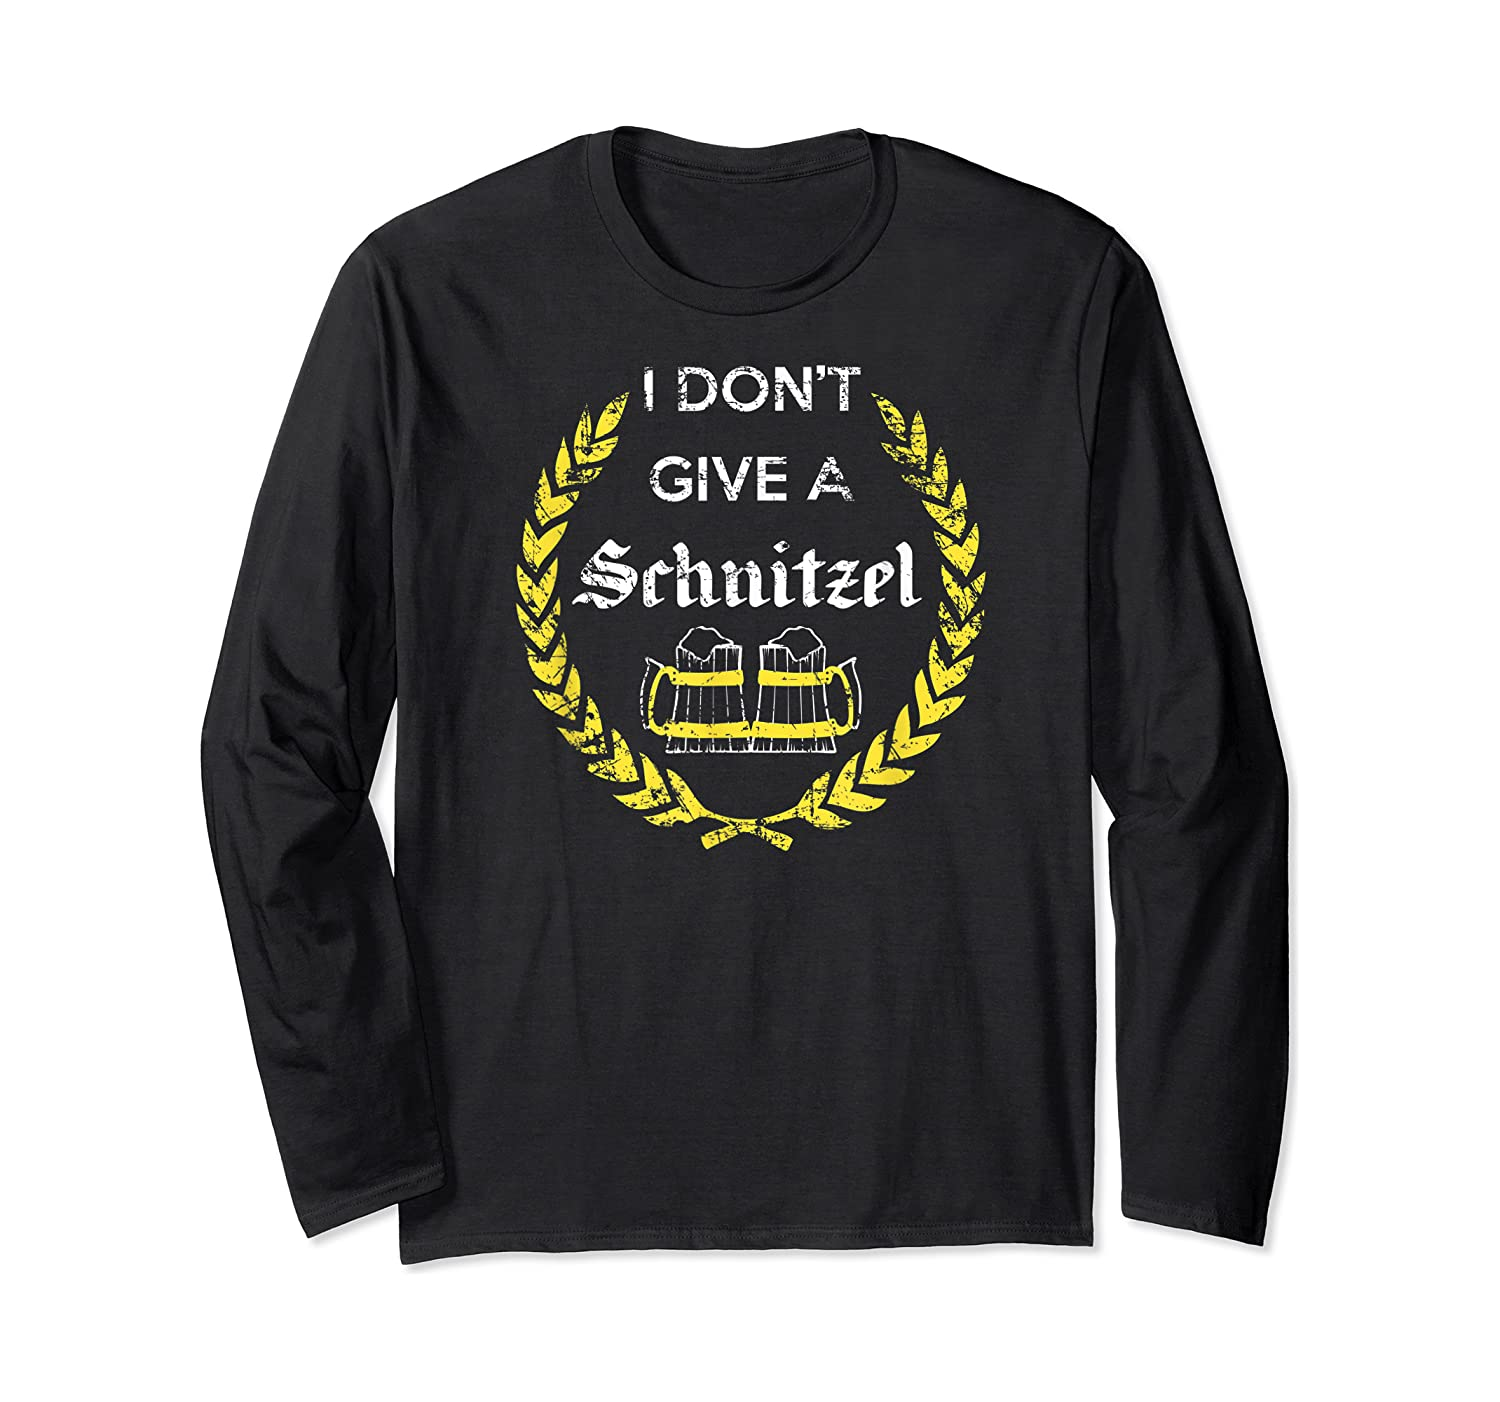 I Don't Give A Schnitzel Shirt, Funny Beer Drinking Gift Long Sleeve T-shirt